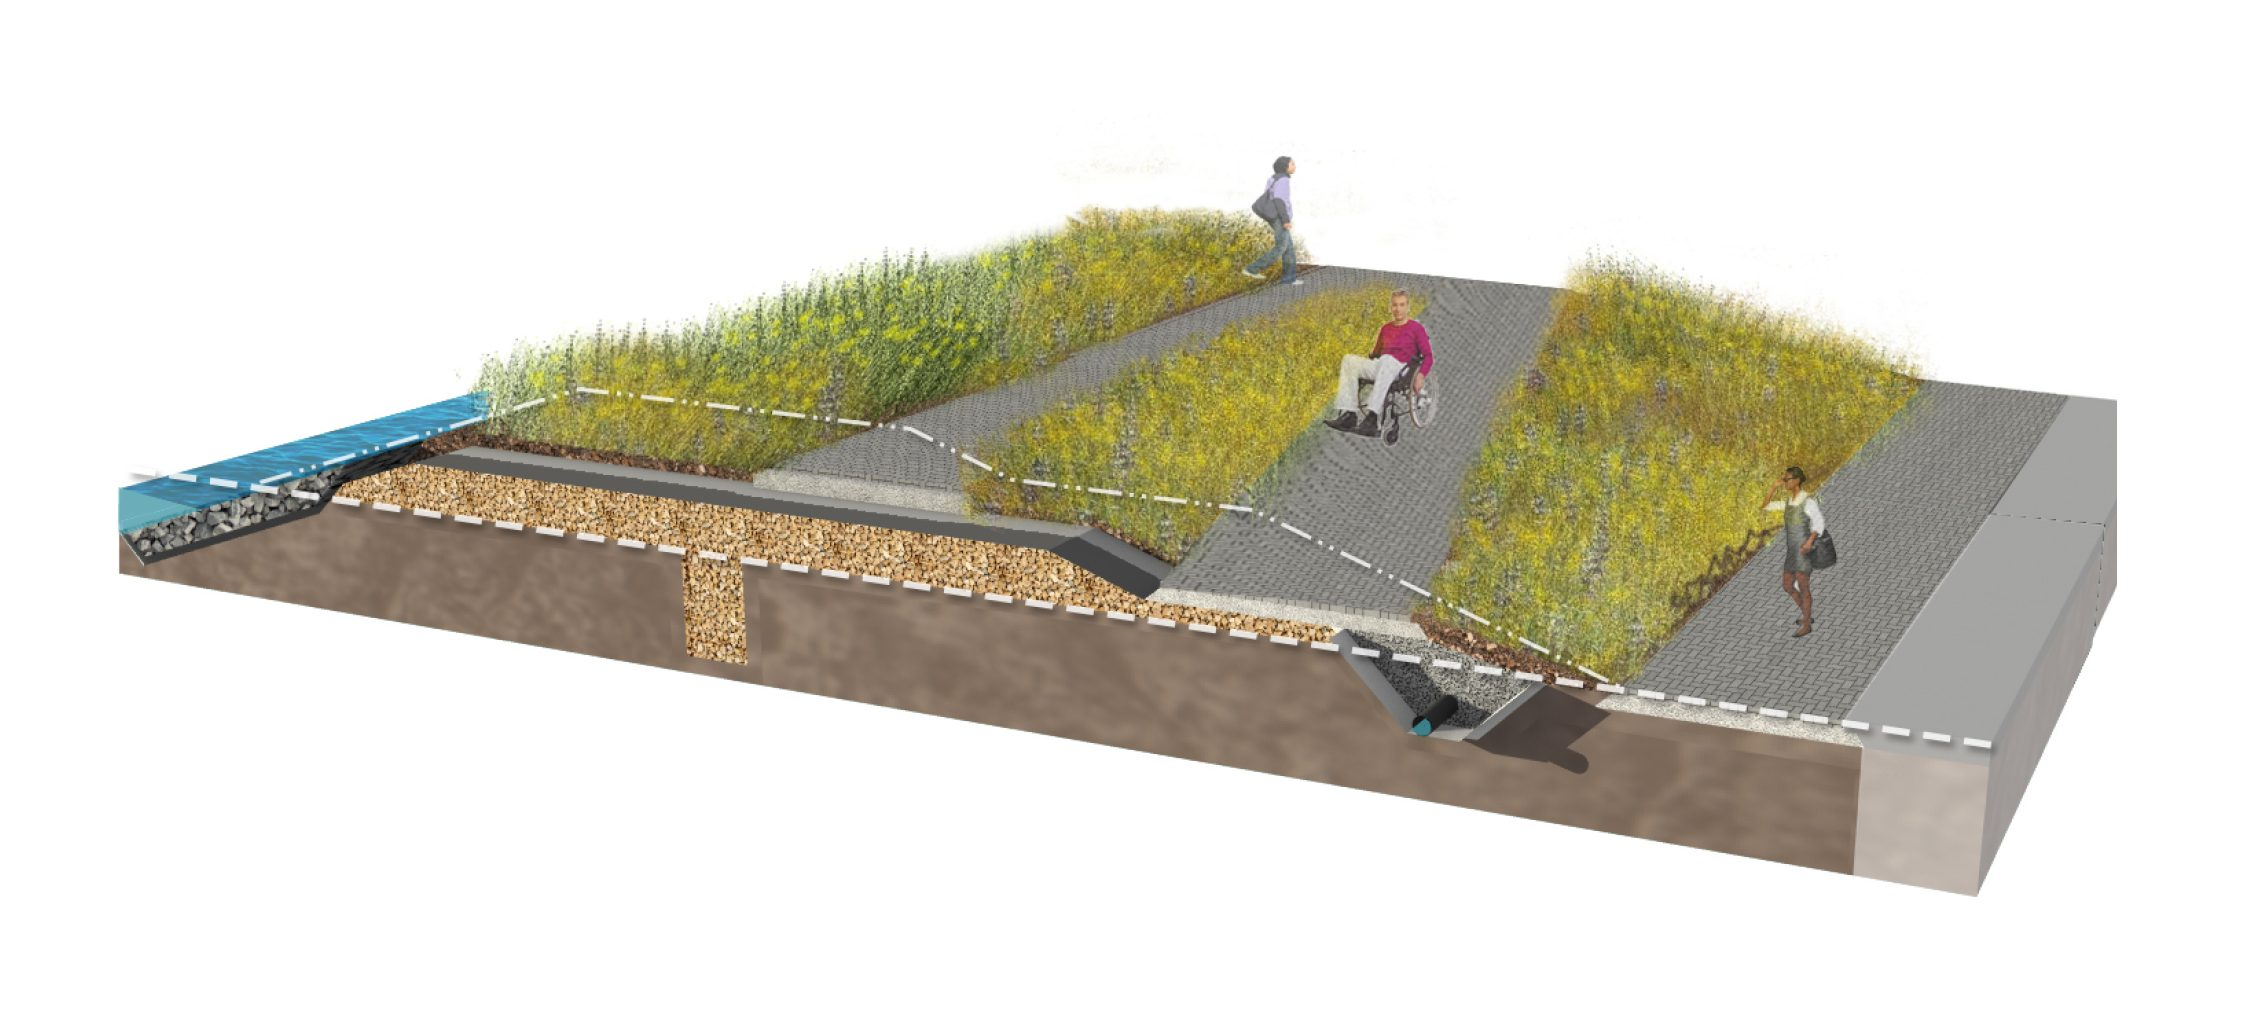 Vegetated Berm